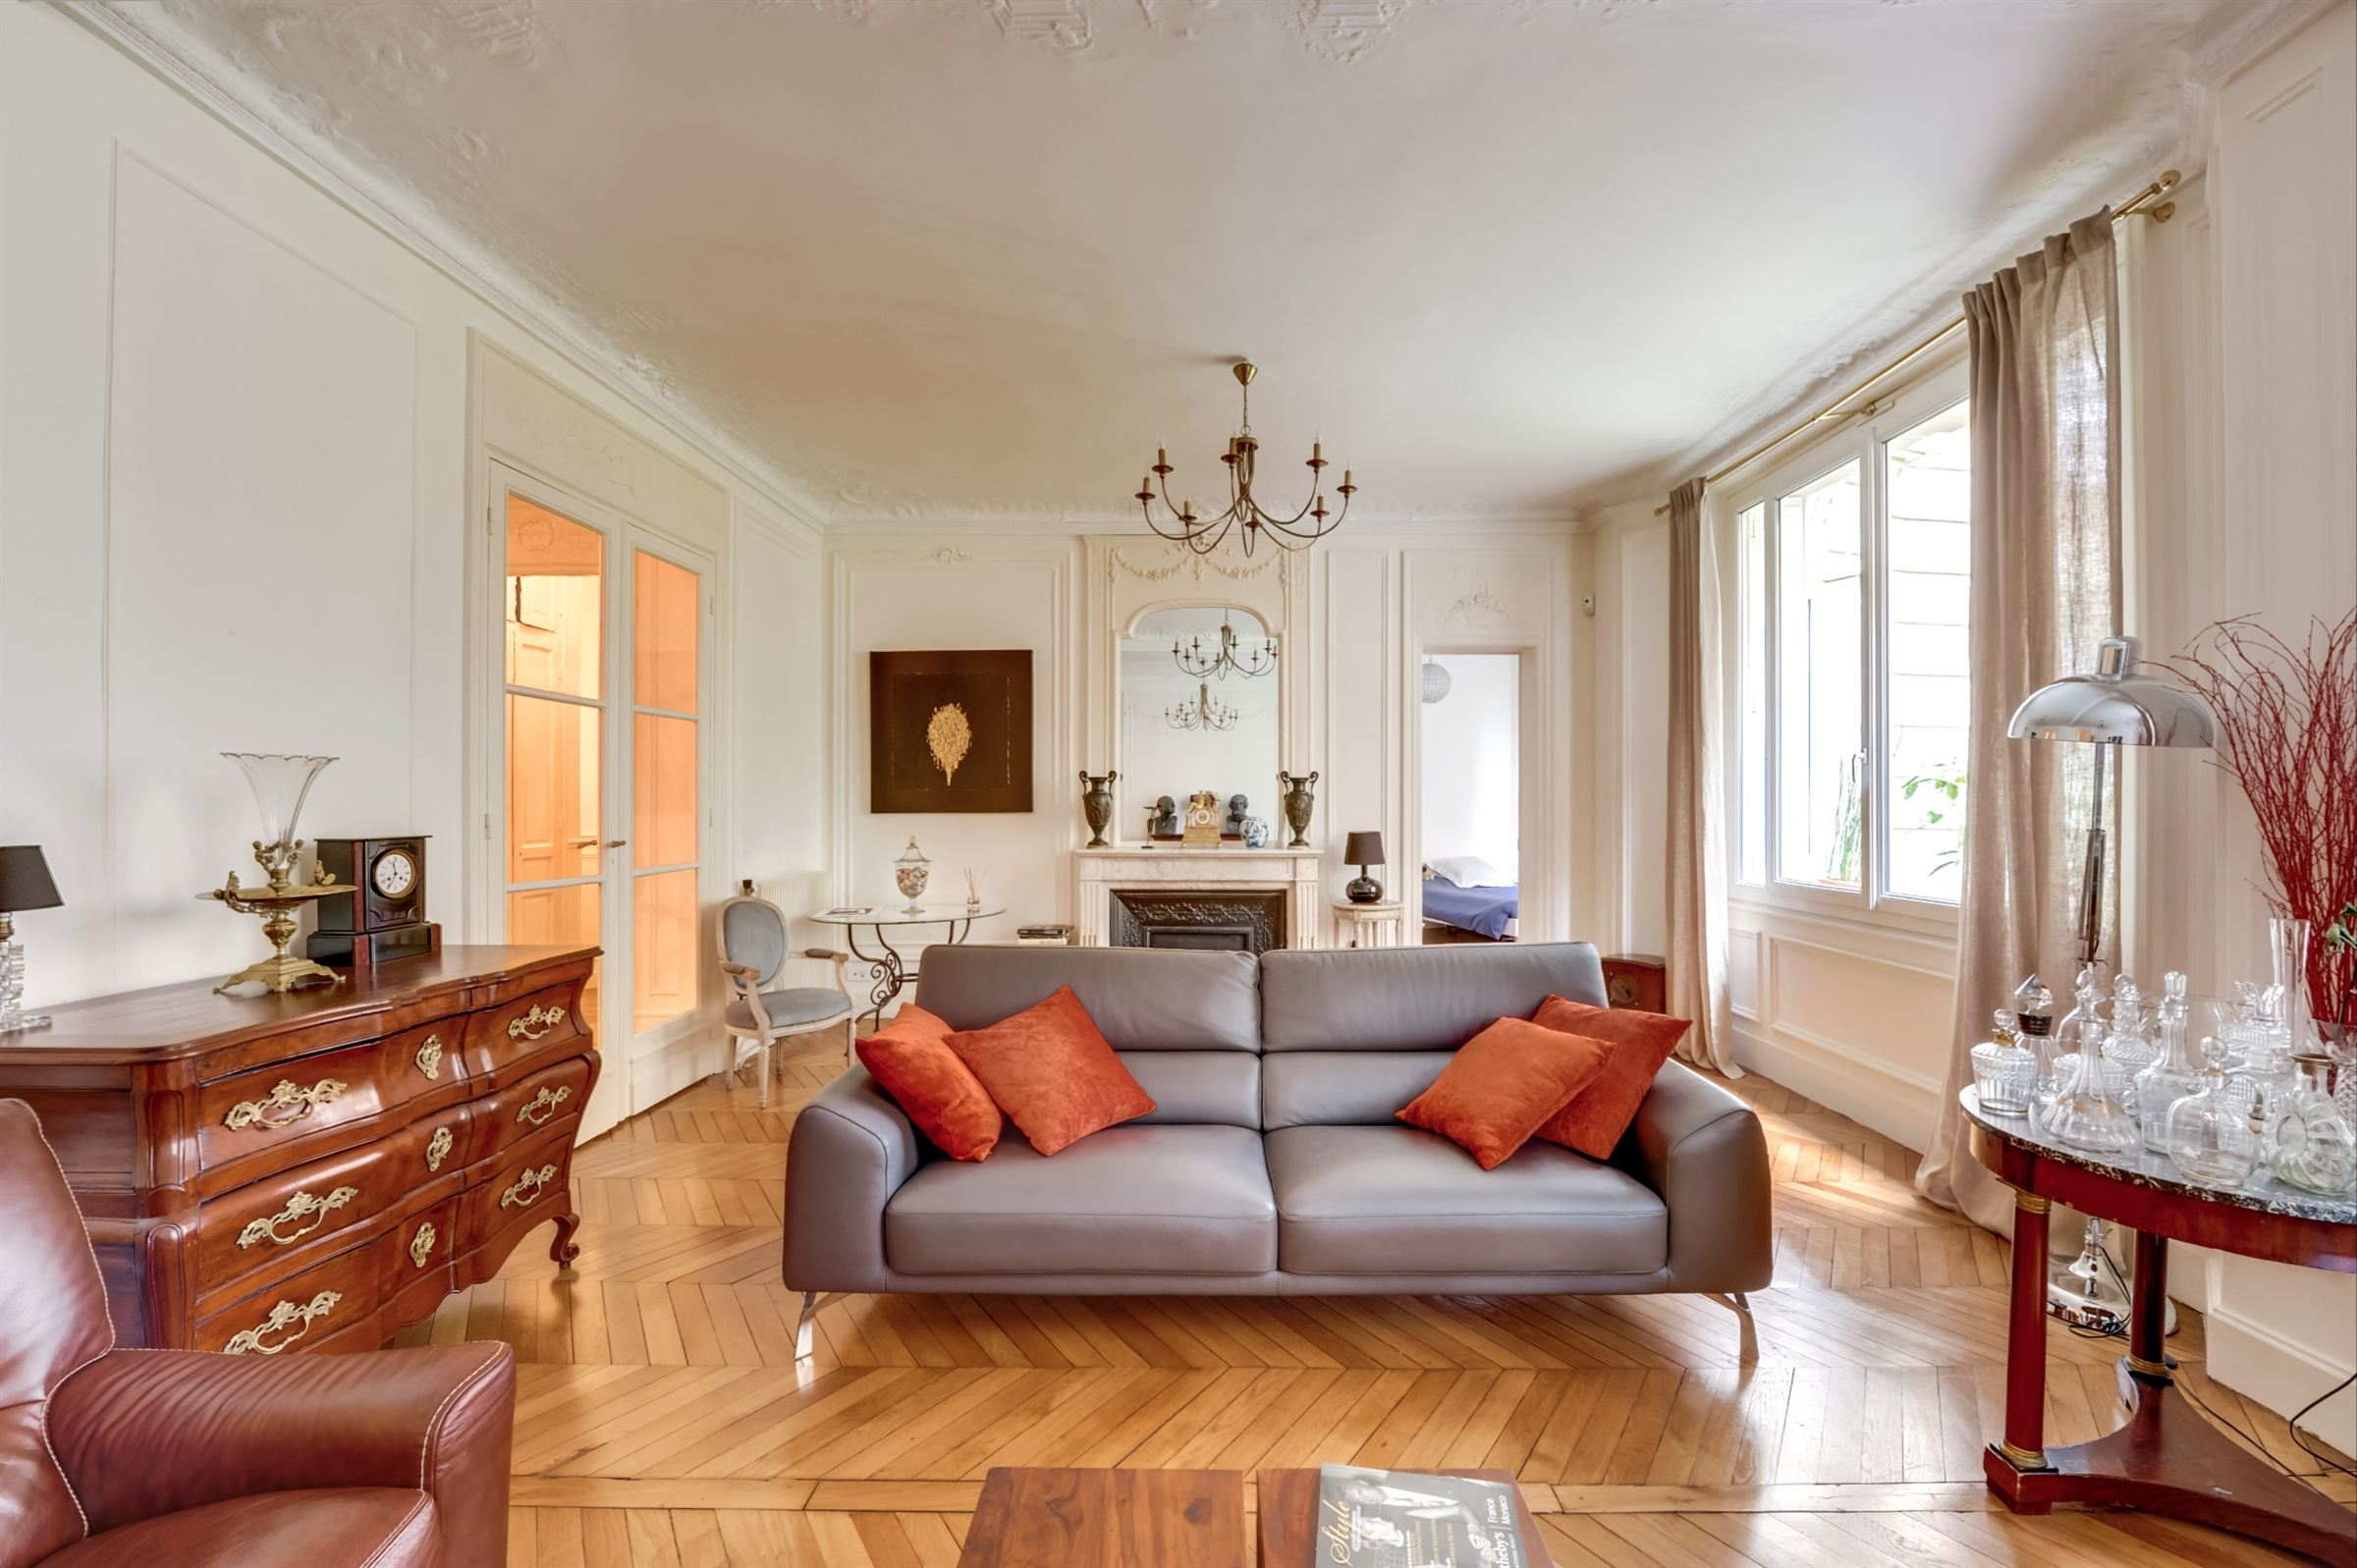 sales property at For sale apartment with the charm of traditional style in Paris 16 - Trocadéro